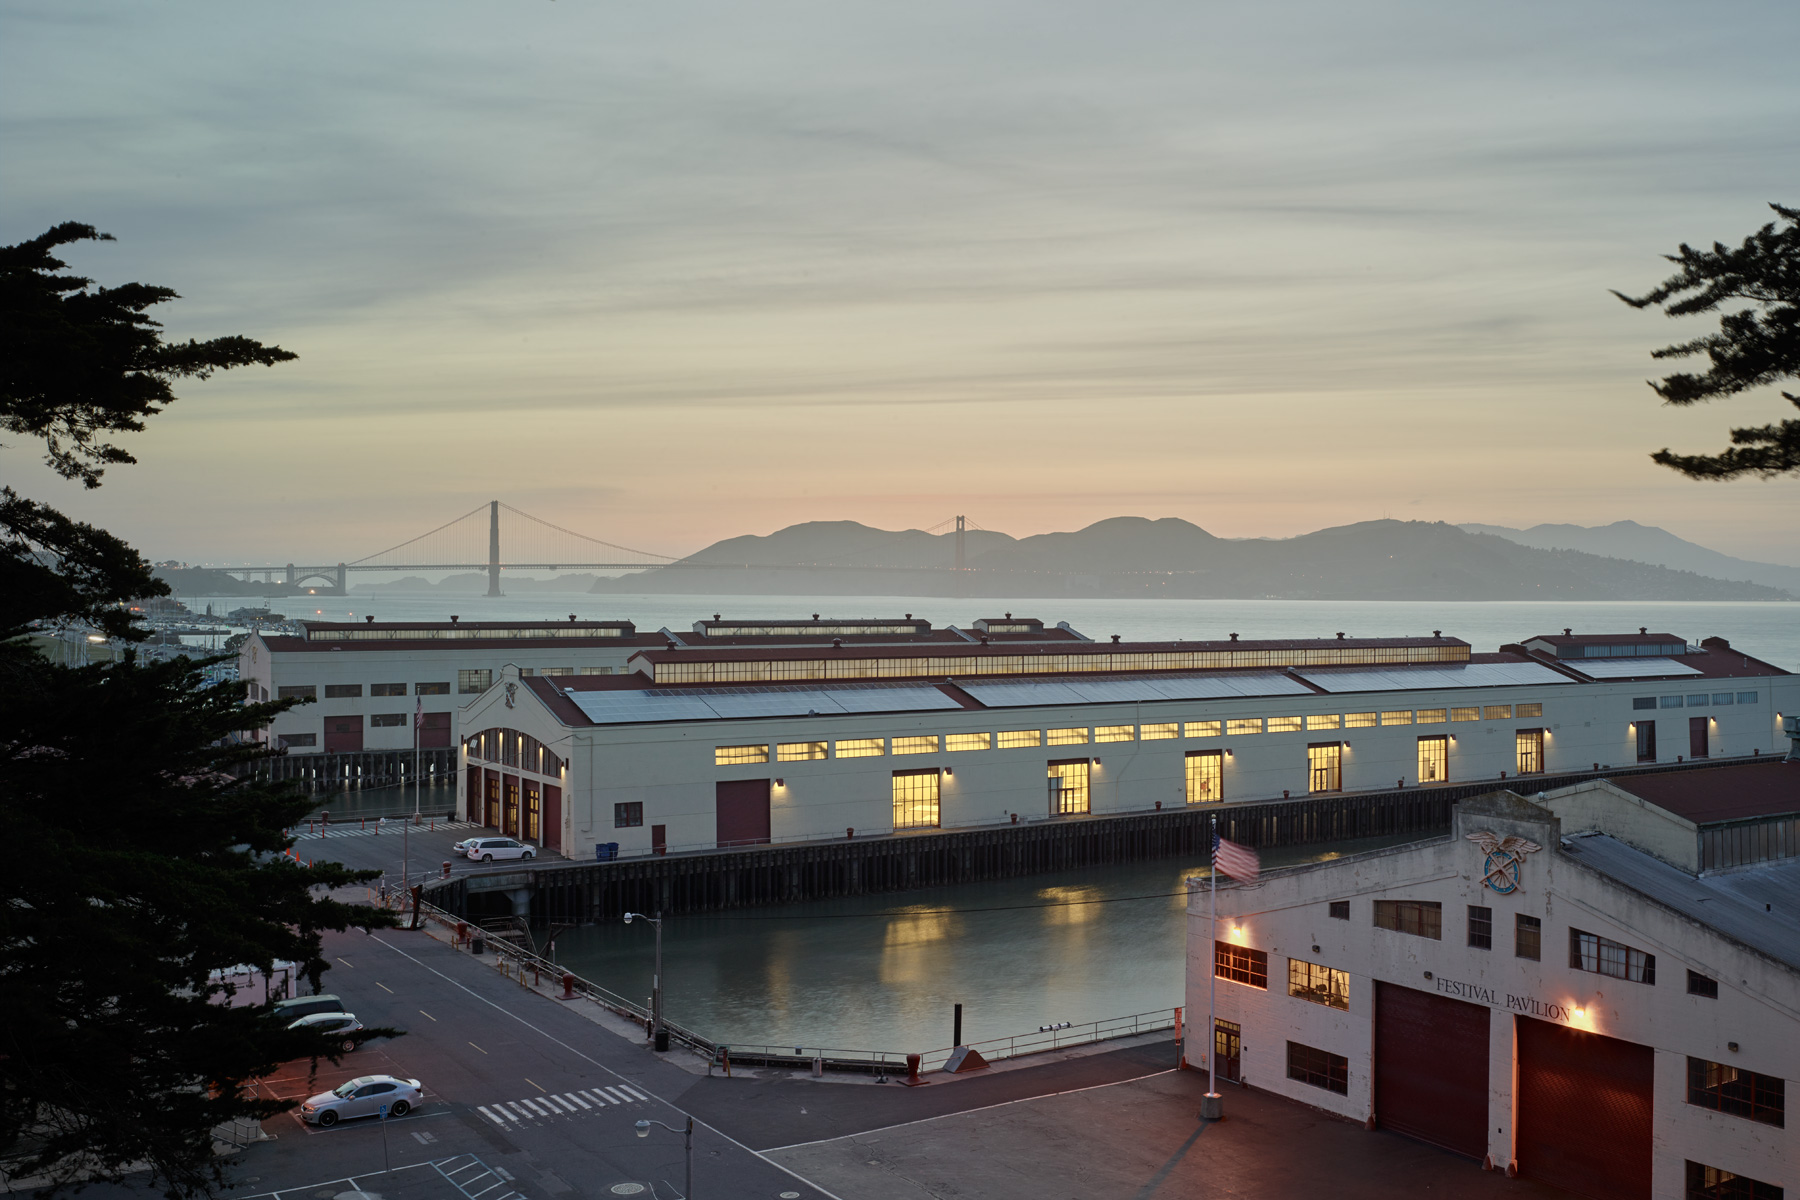 Pier 2 at the historic army base Fort Mason Center is currently being renovated into the new San Francisco Art Institute Graduate Center.